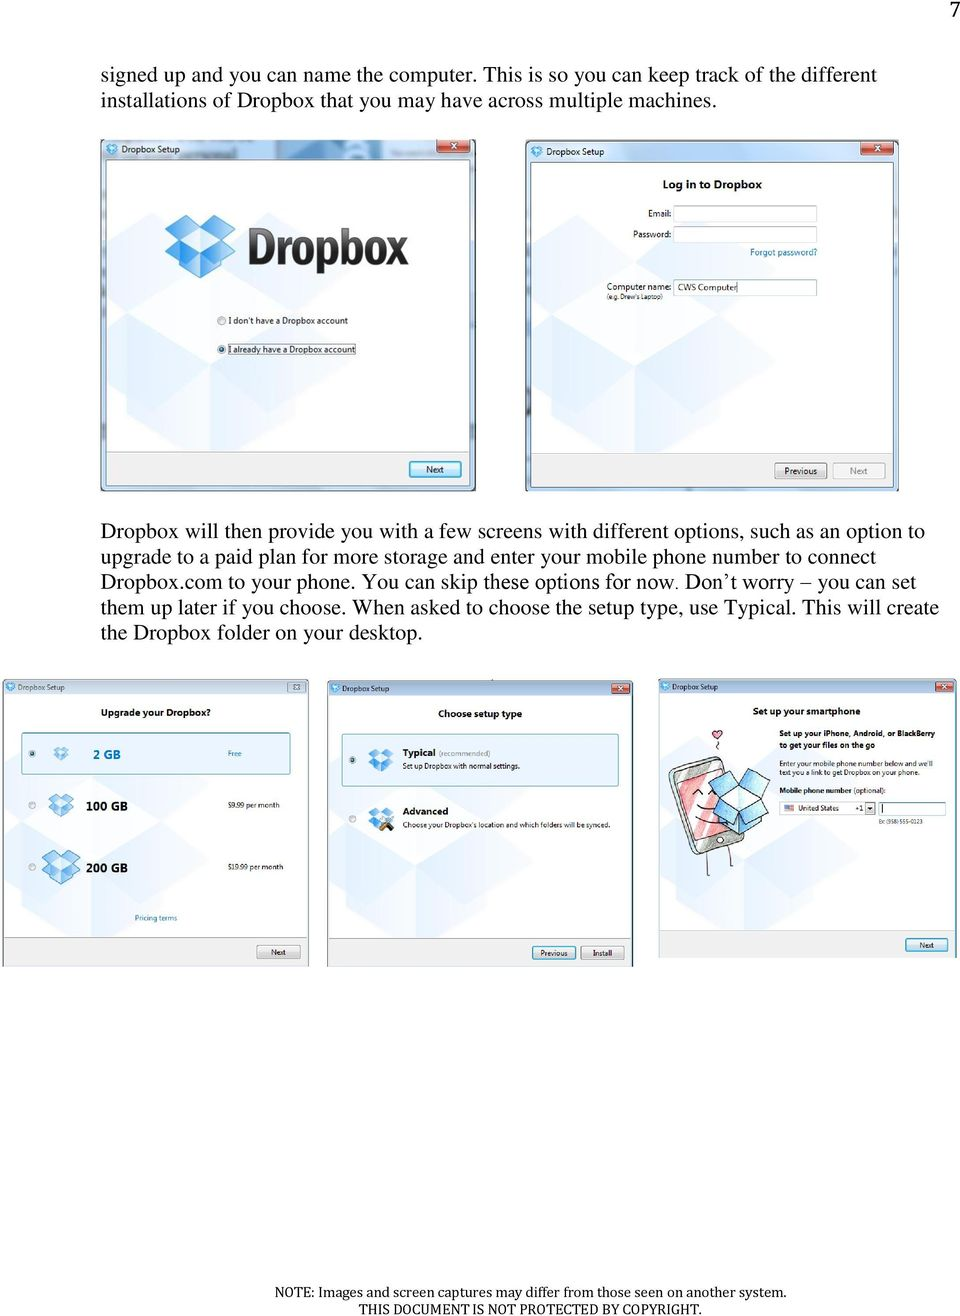 Dropbox will then provide you with a few screens with different options, such as an option to upgrade to a paid plan for more storage and